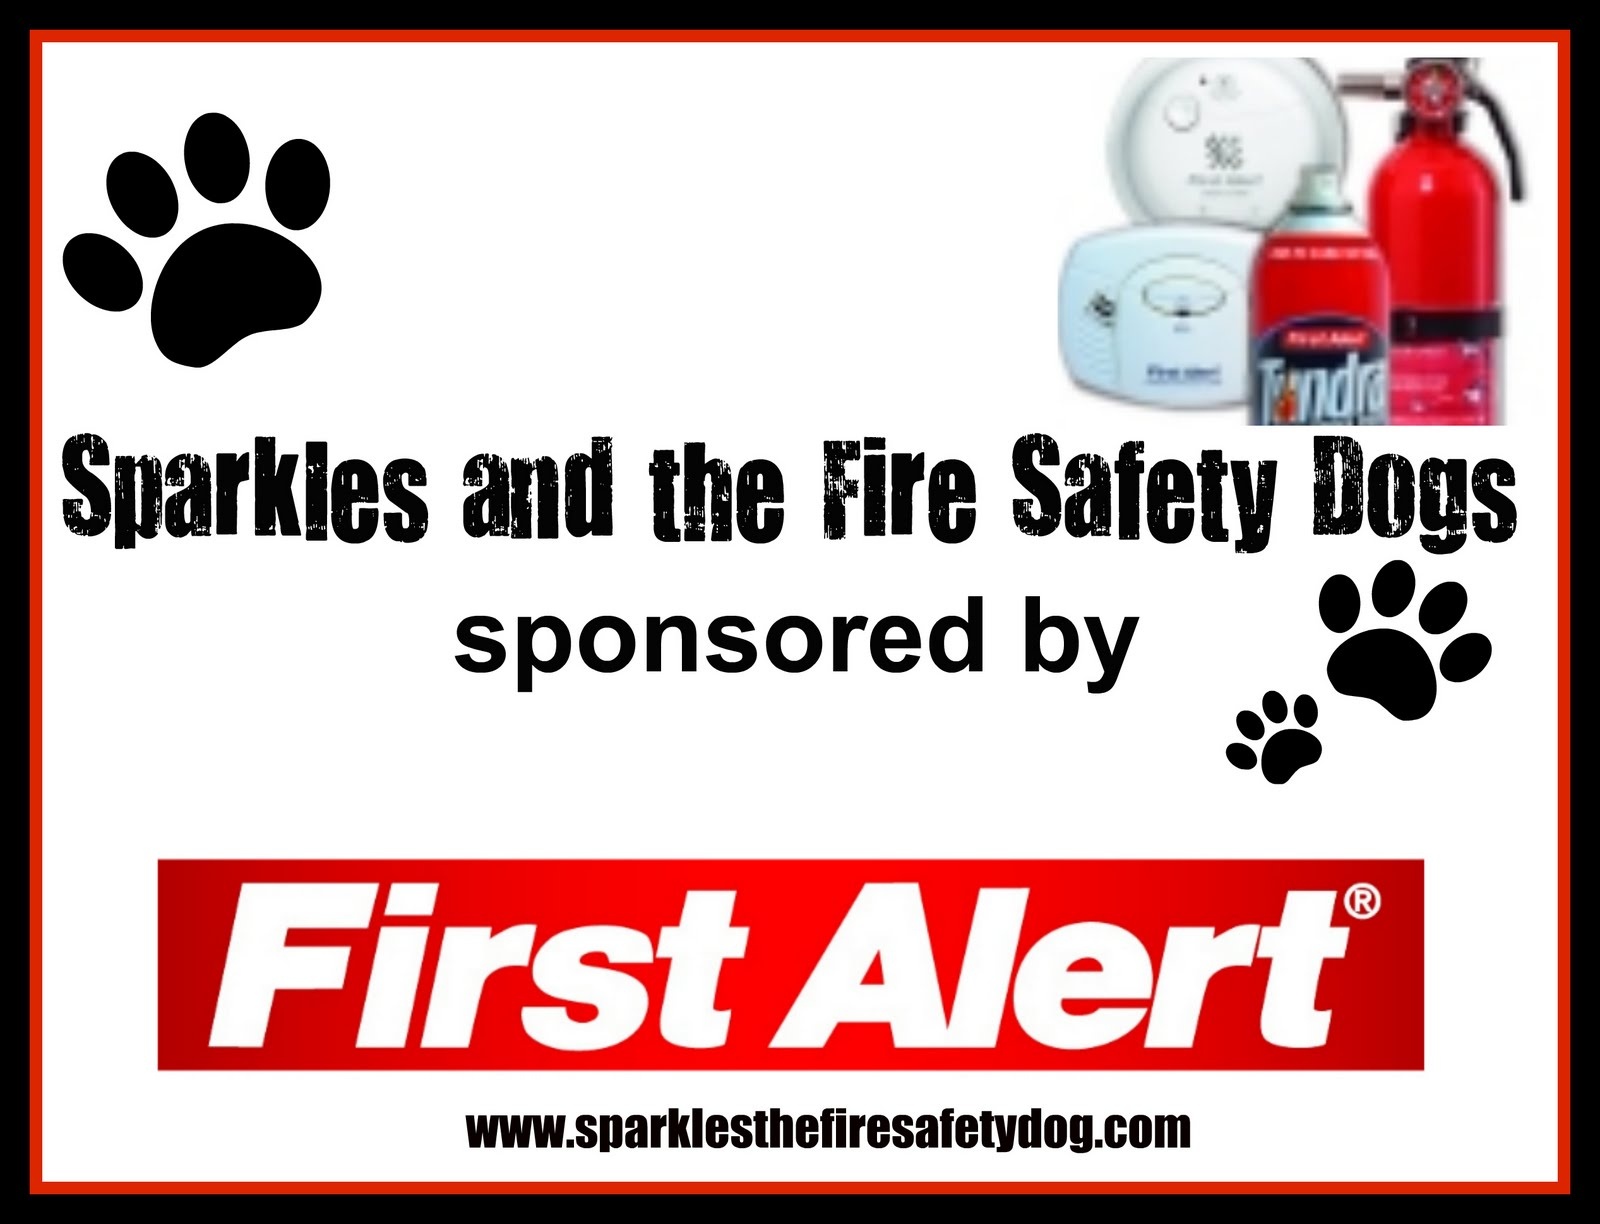 Thank you to our sponsor, First Alert.